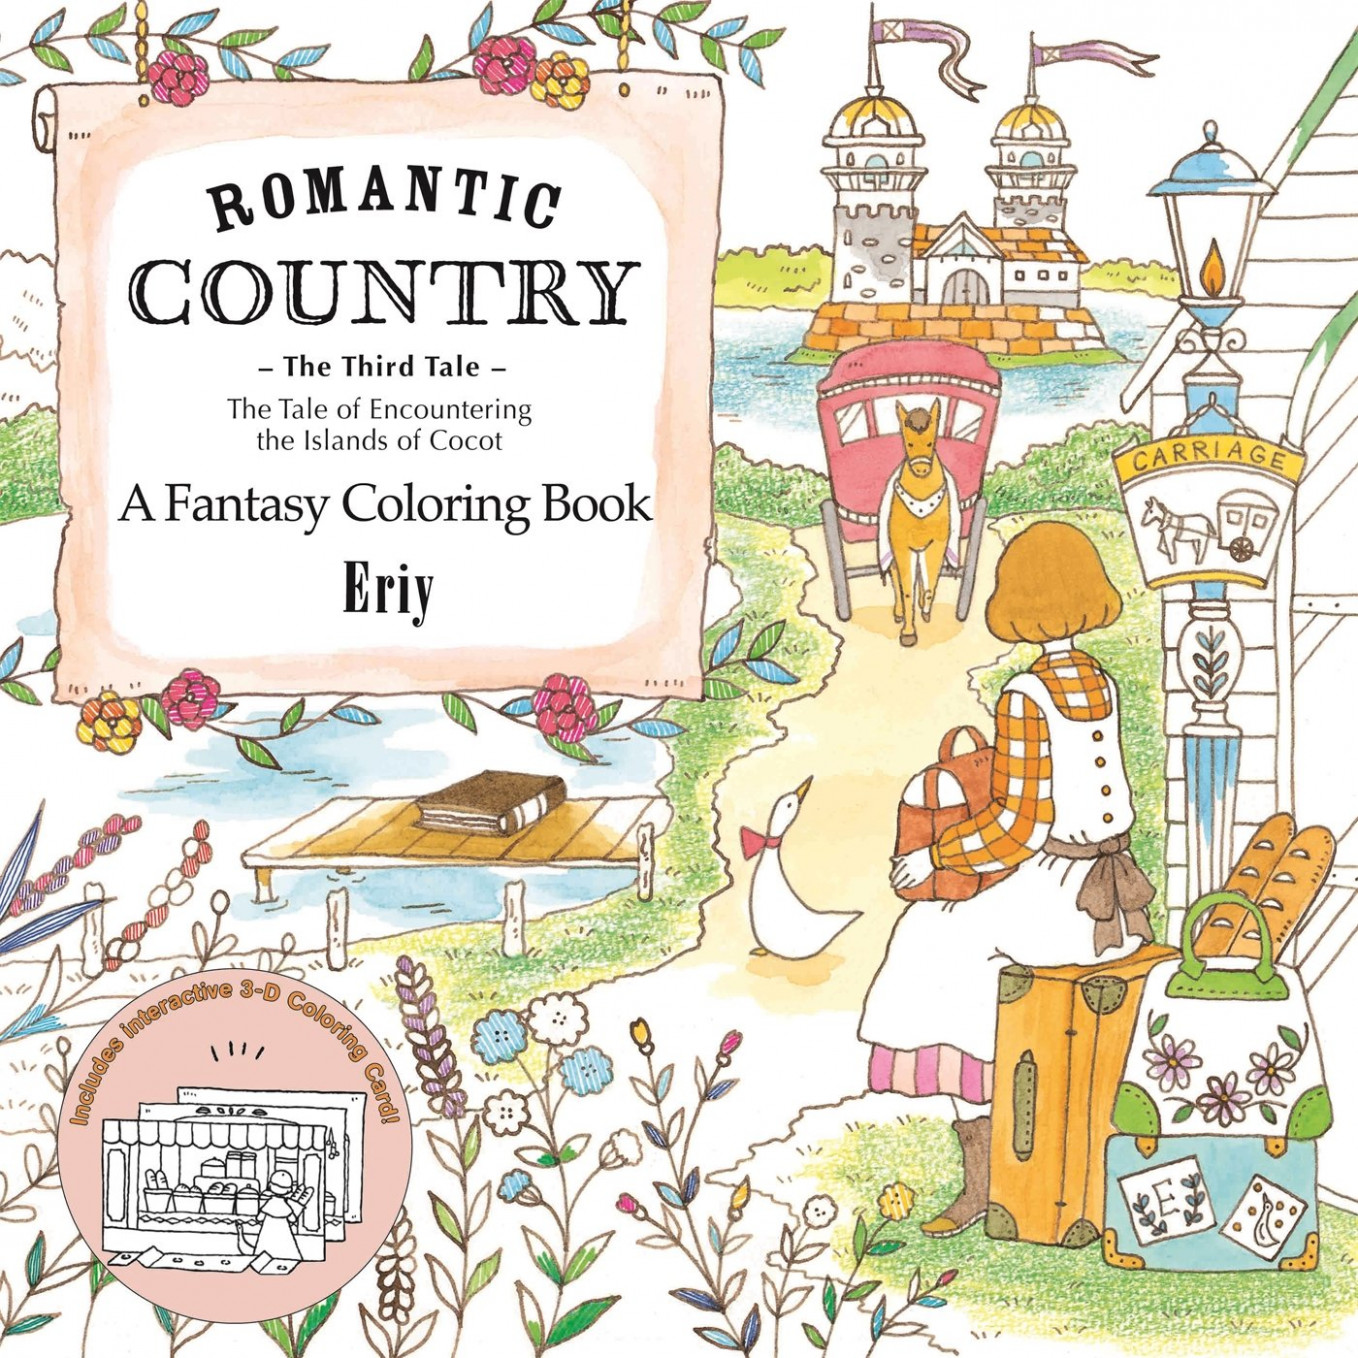 Amazon.com: Romantic Country: The Third Tale: A Fantasy Coloring ...